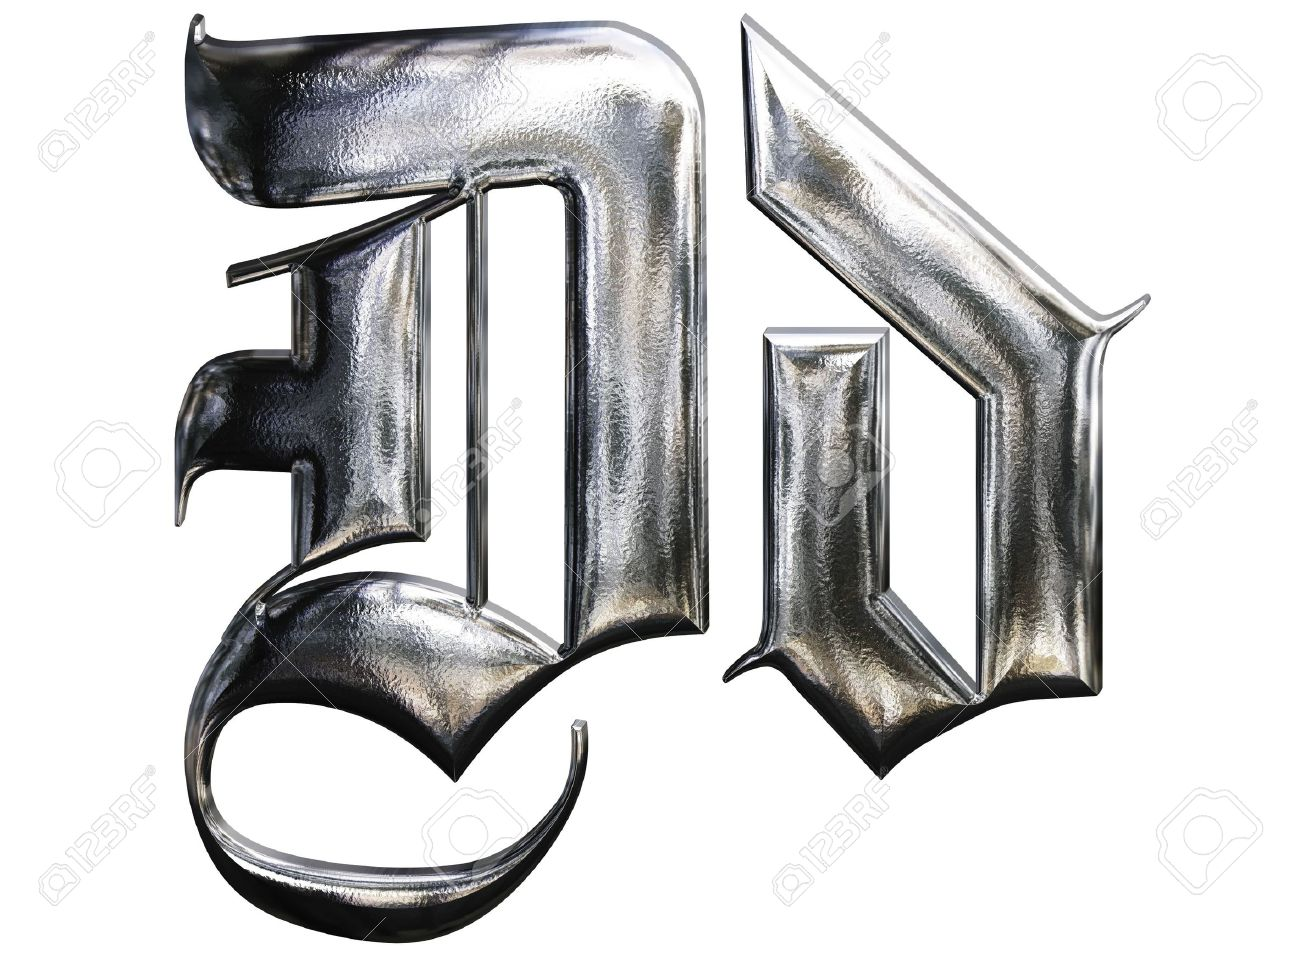 Metallic Patterned Letter Of German Gothic Alphabet Font D Stock Photo